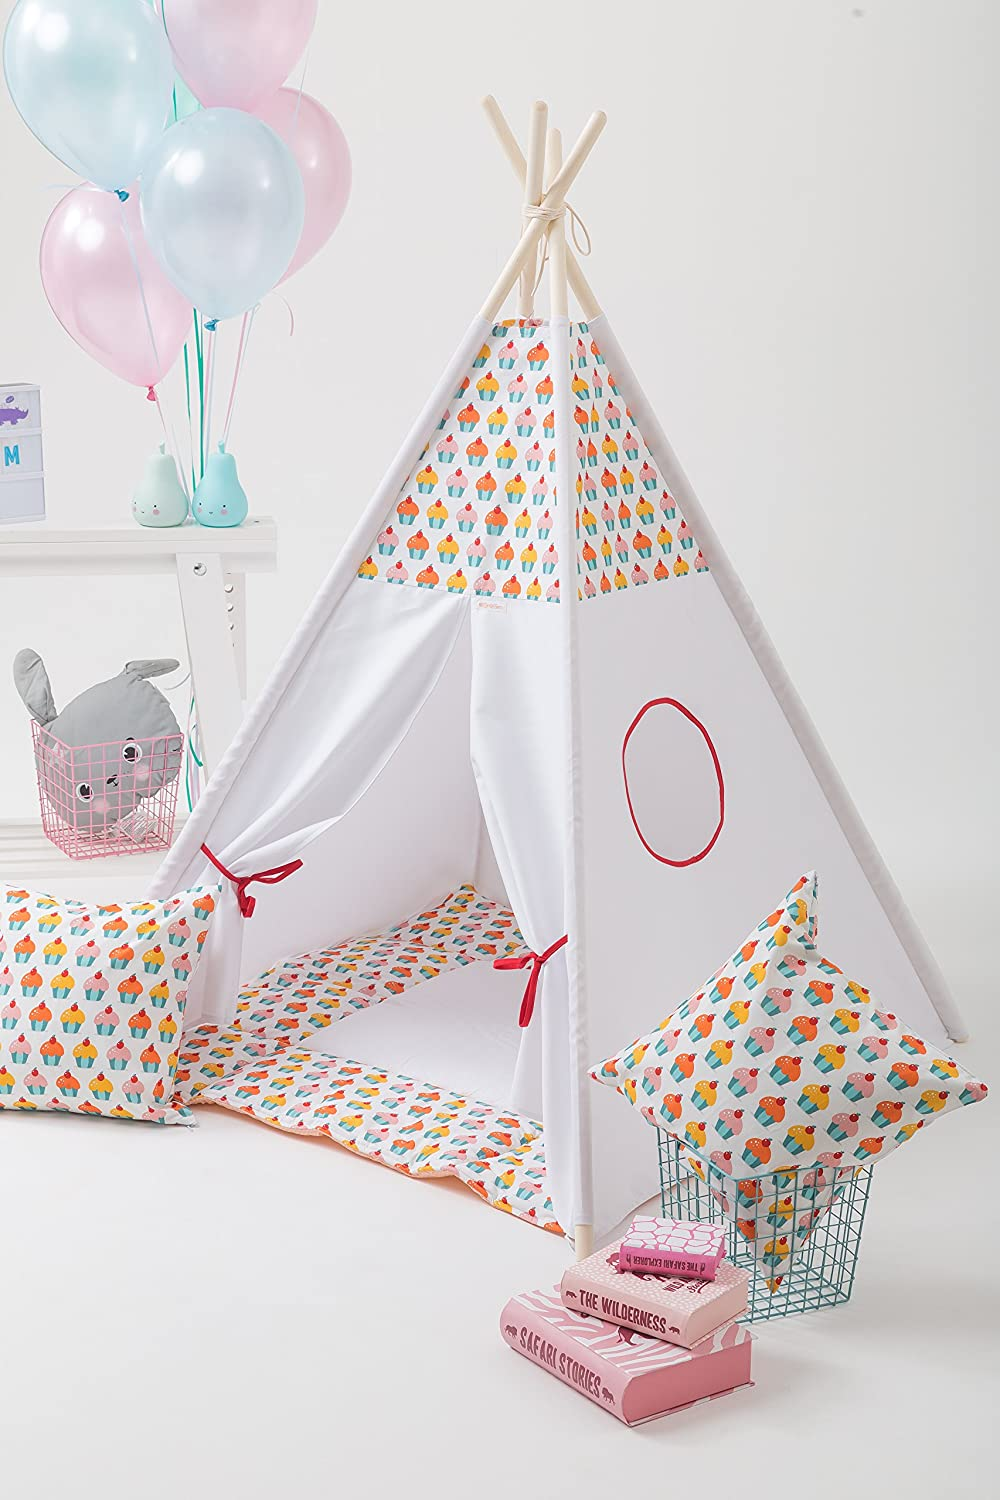 kinder tipi teepee zelt set tipi spieldecke kissen. Black Bedroom Furniture Sets. Home Design Ideas